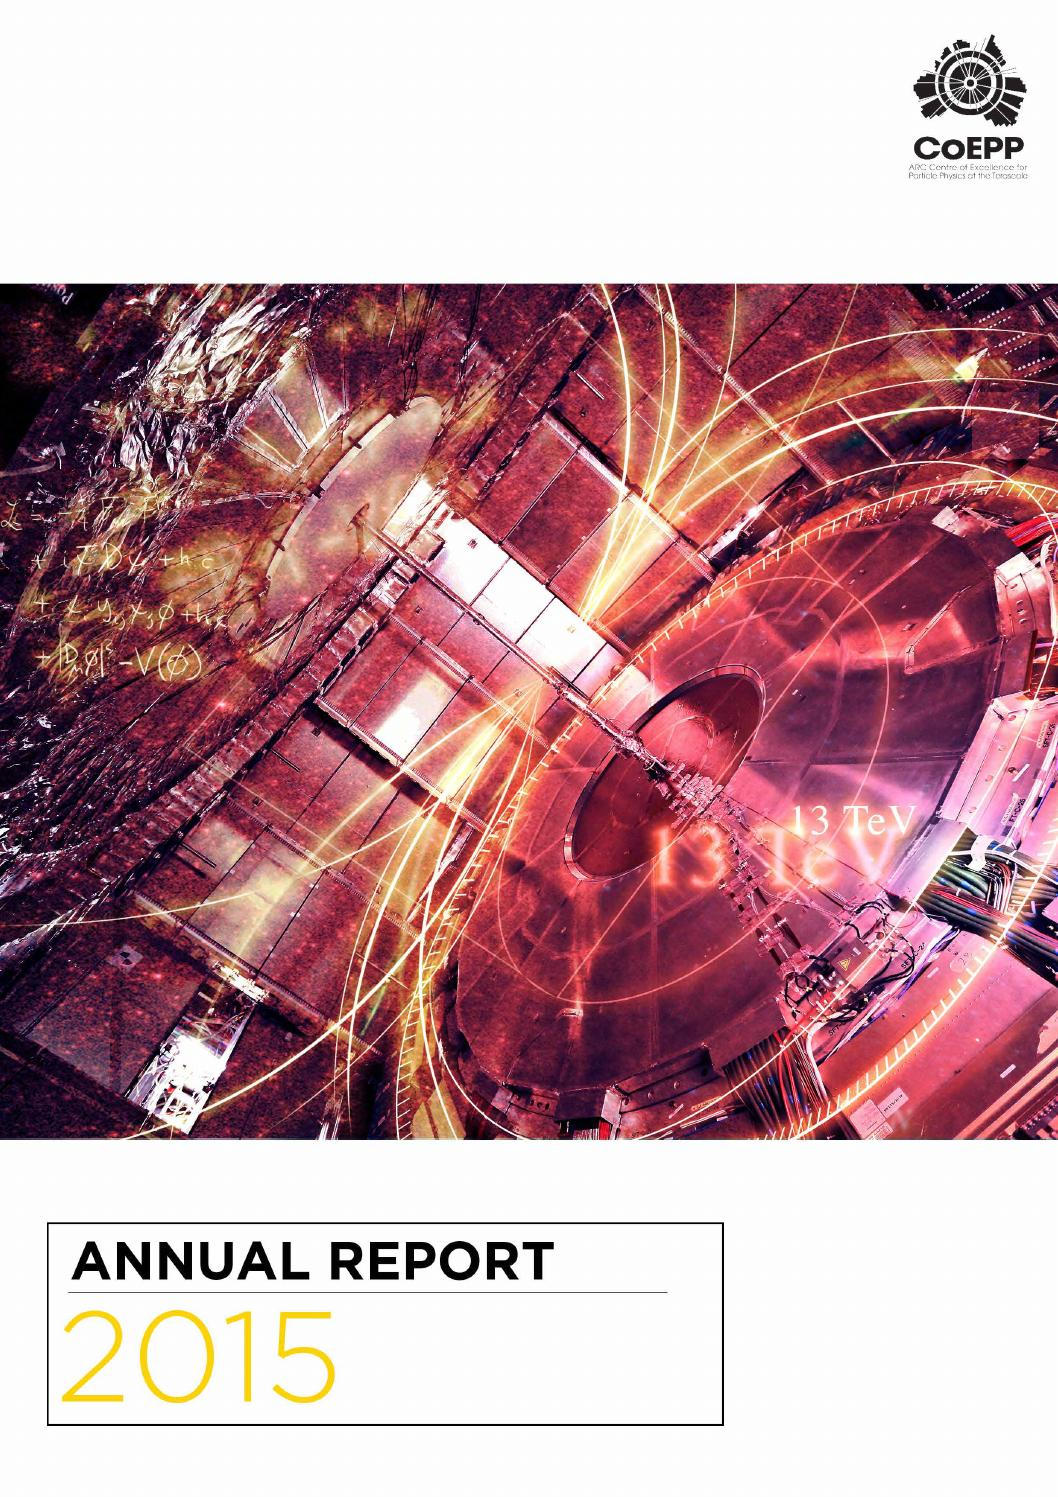 Coepp Annual Report 2015 By Coepp Issuu